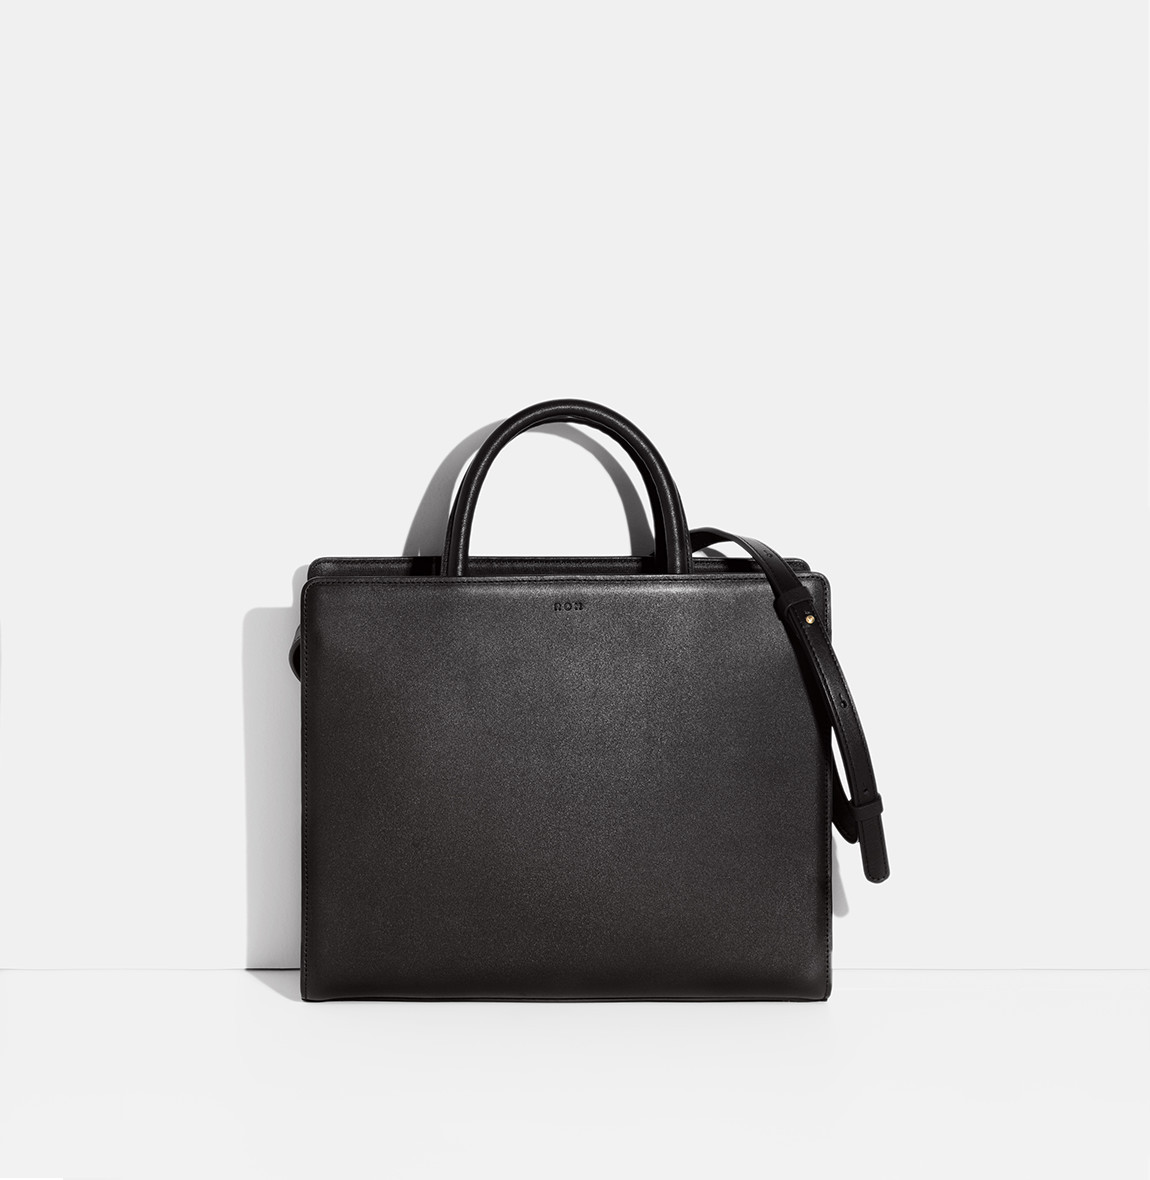 Square Tote Bag Black